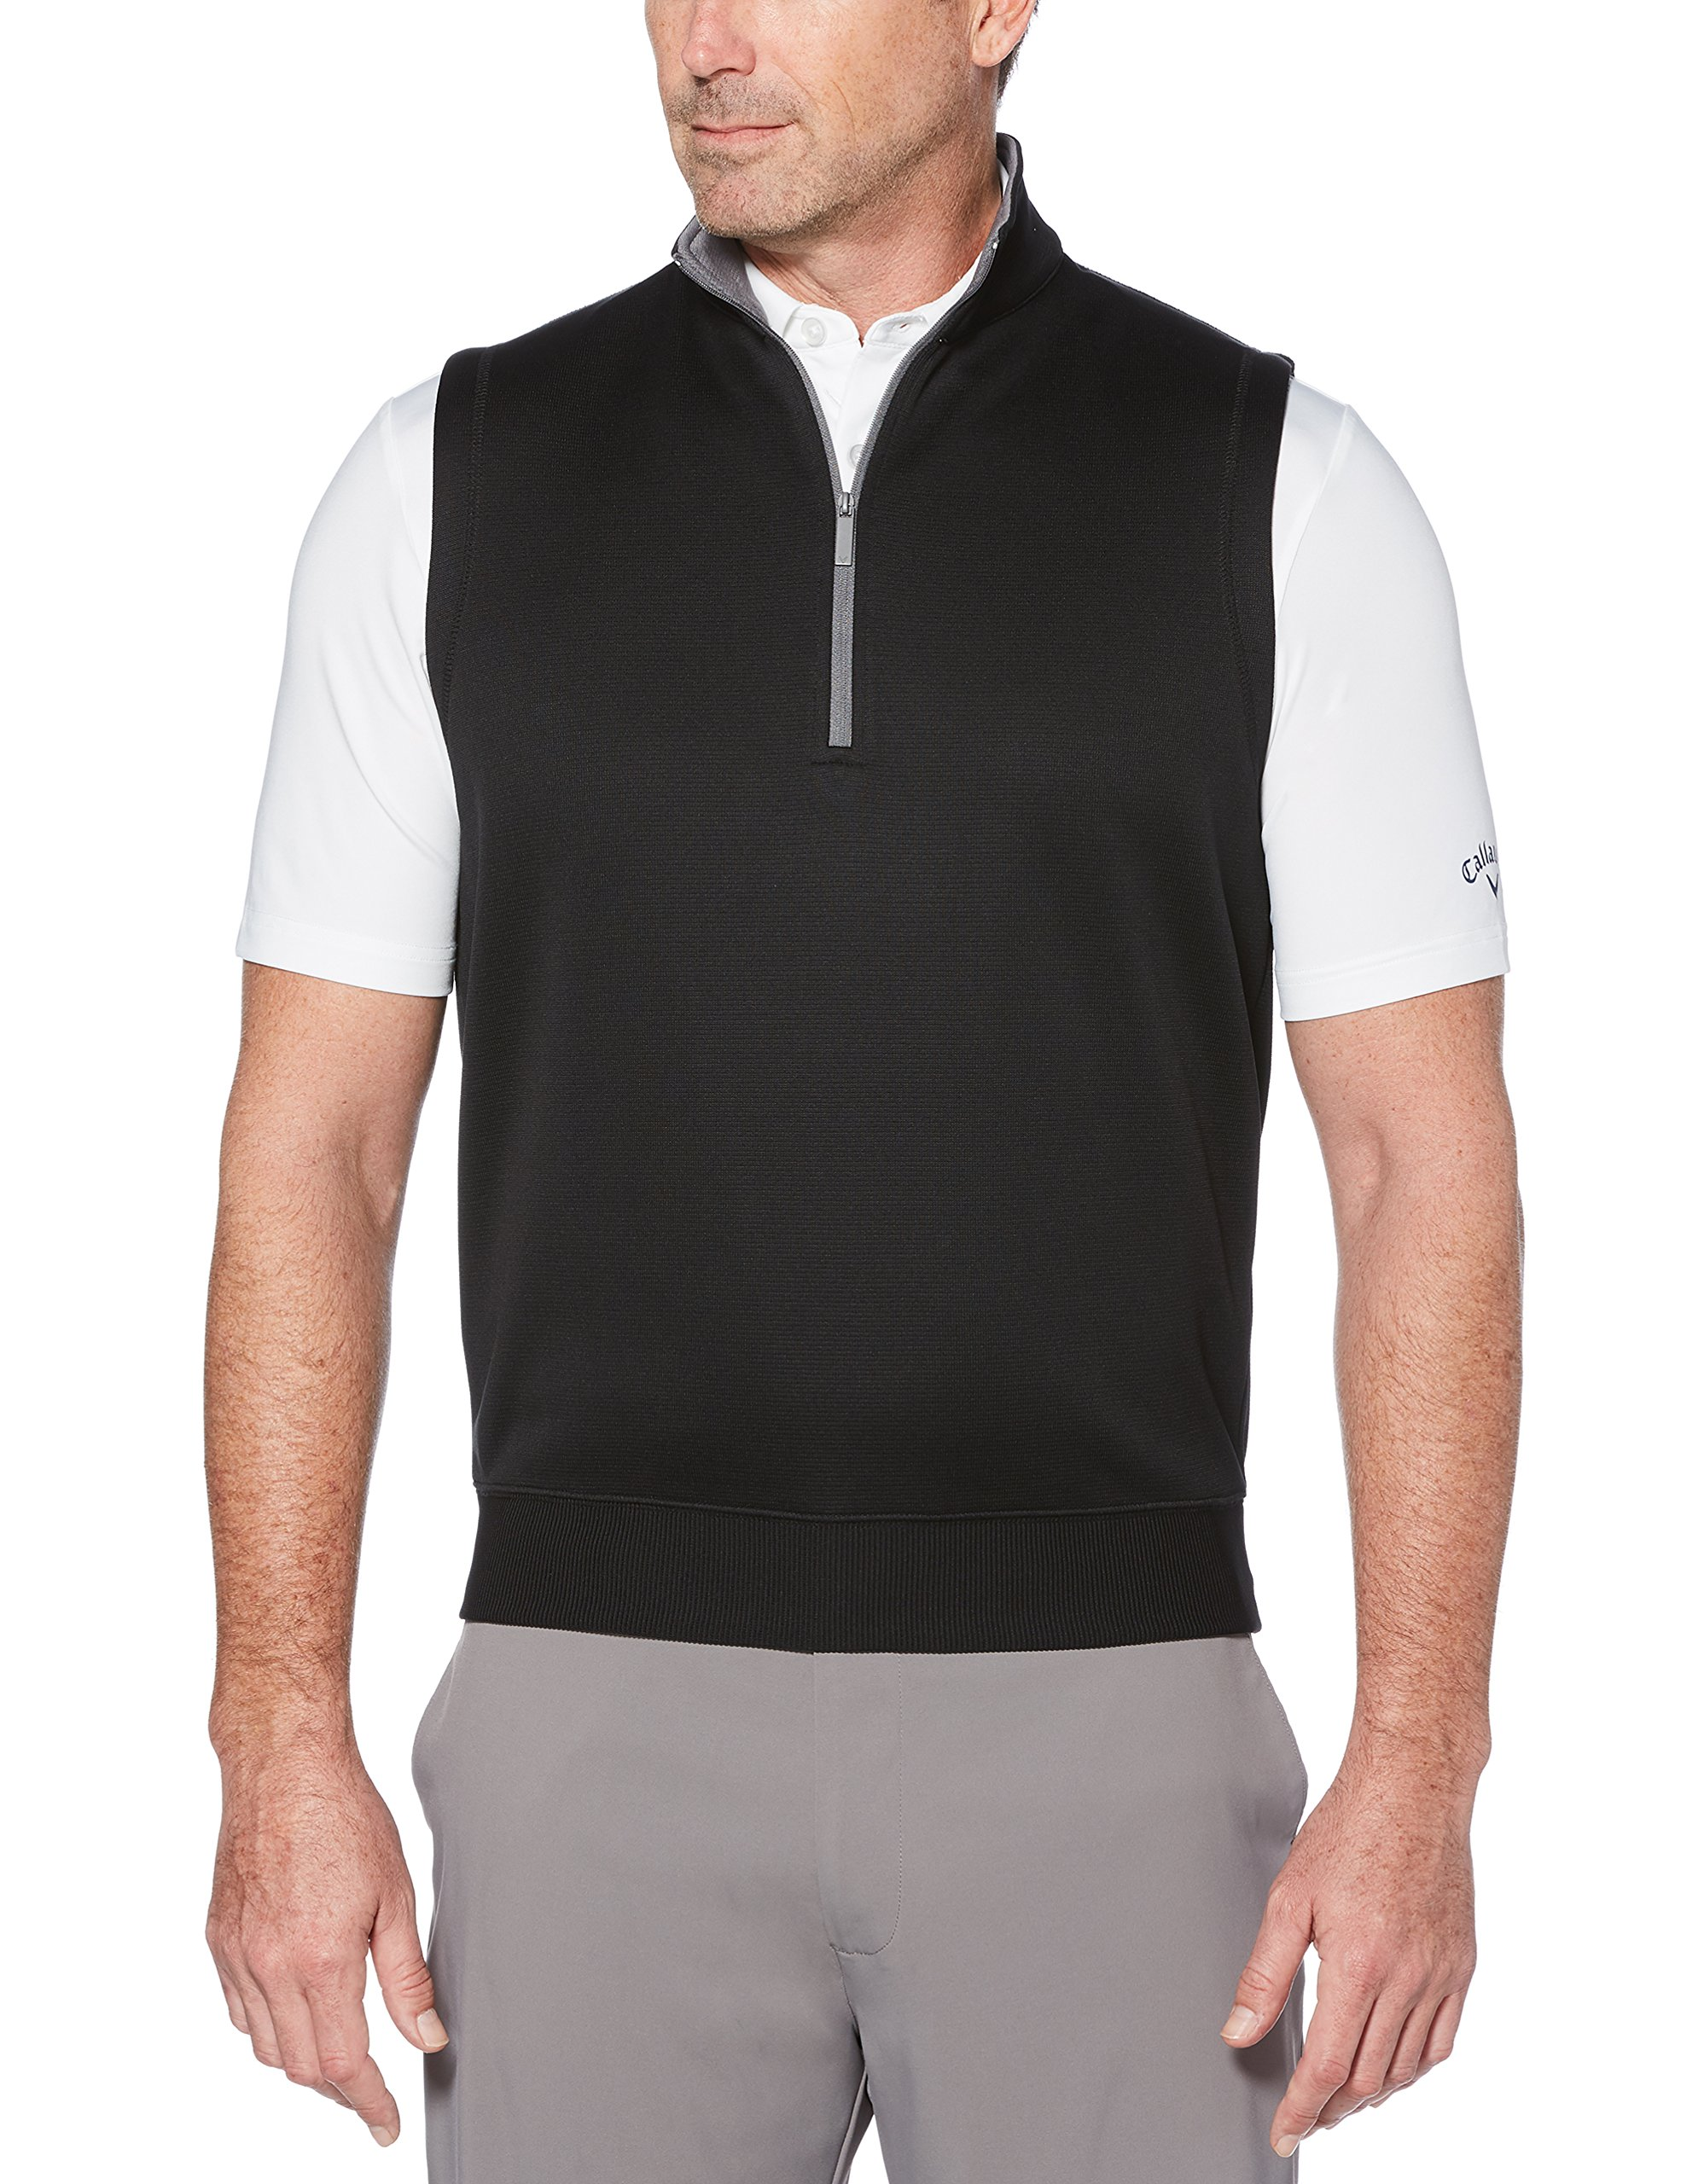 Callaway Men's Water Repellent 1/4 Zip Golf Vest, Caviar, Small by Callaway